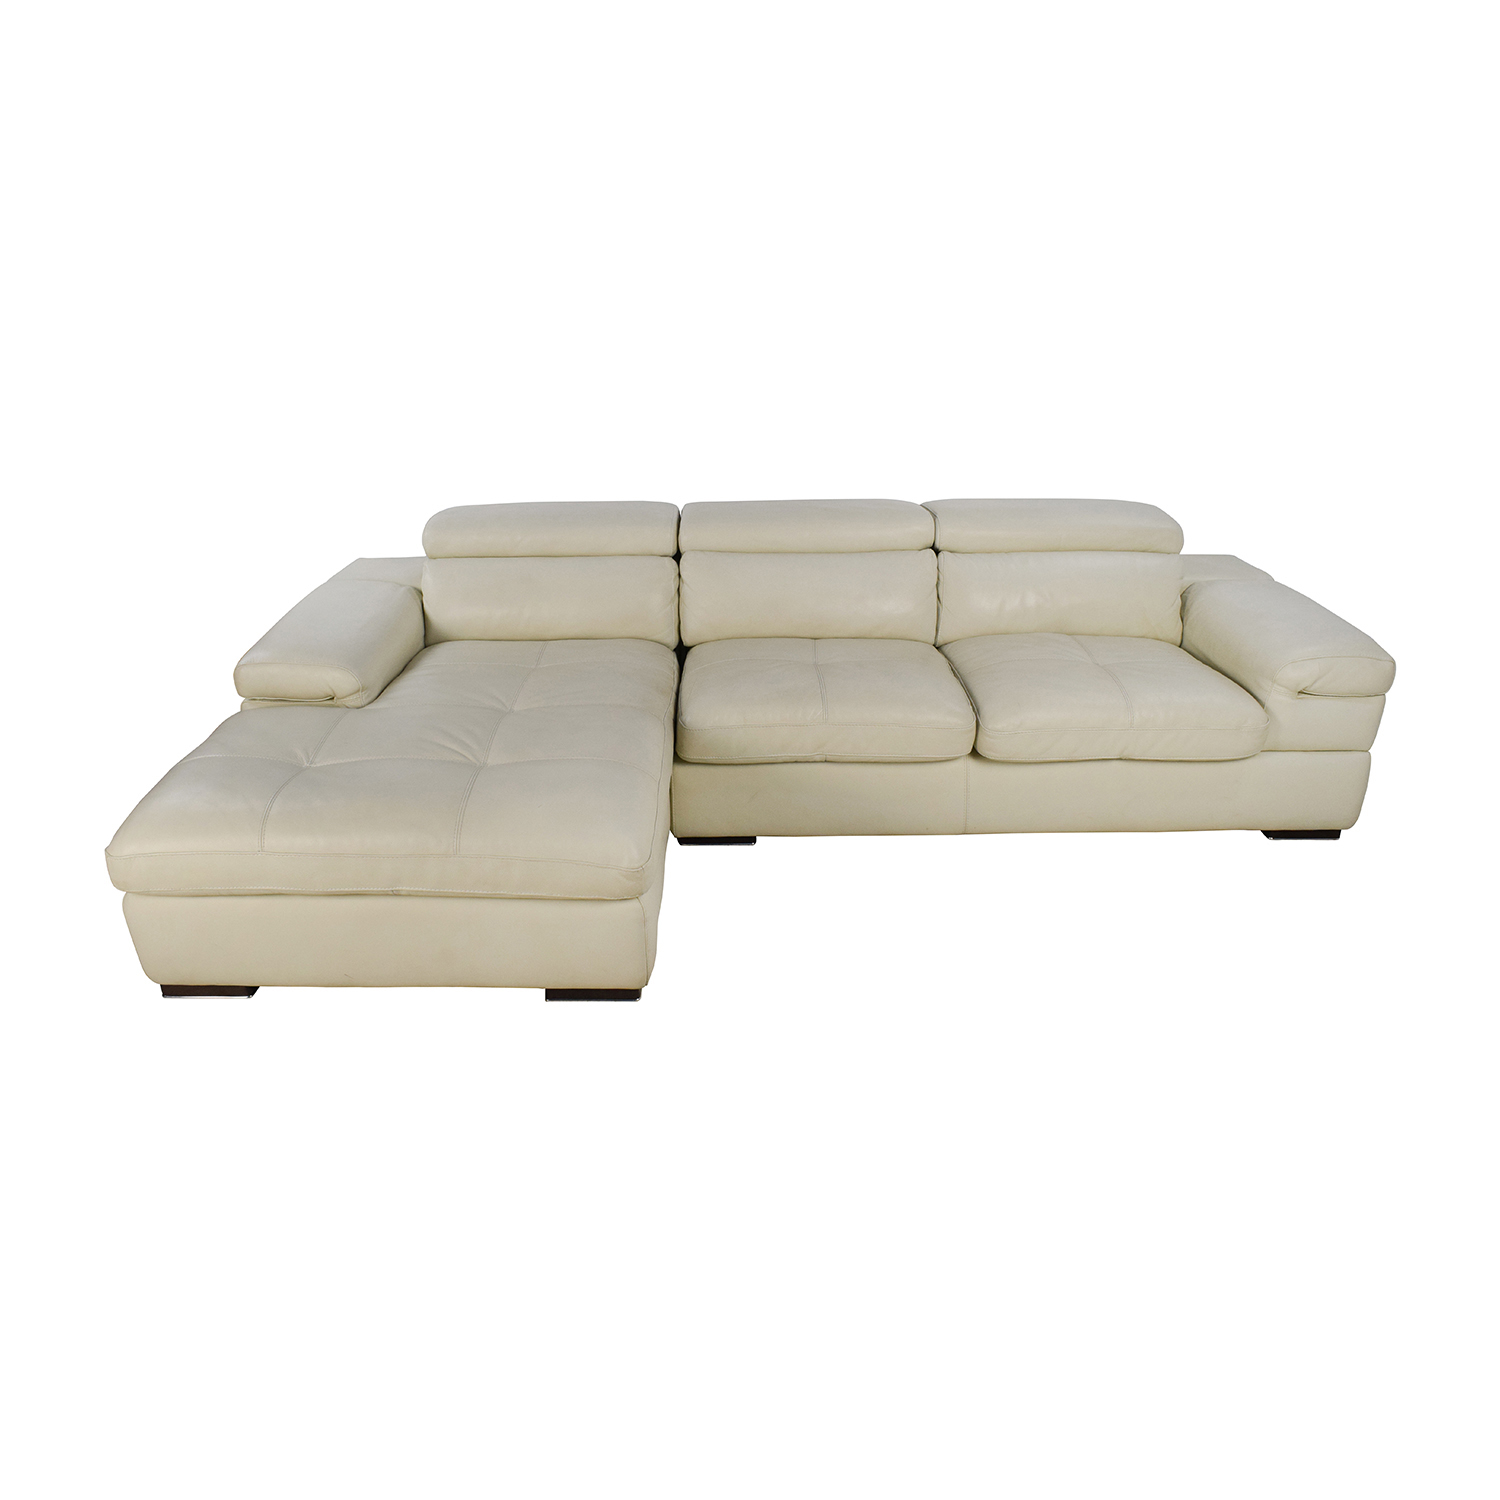 Leather Sectional Sofa Sale 69 Off L Shaped Cream Leather Sectional Sofa Sofas